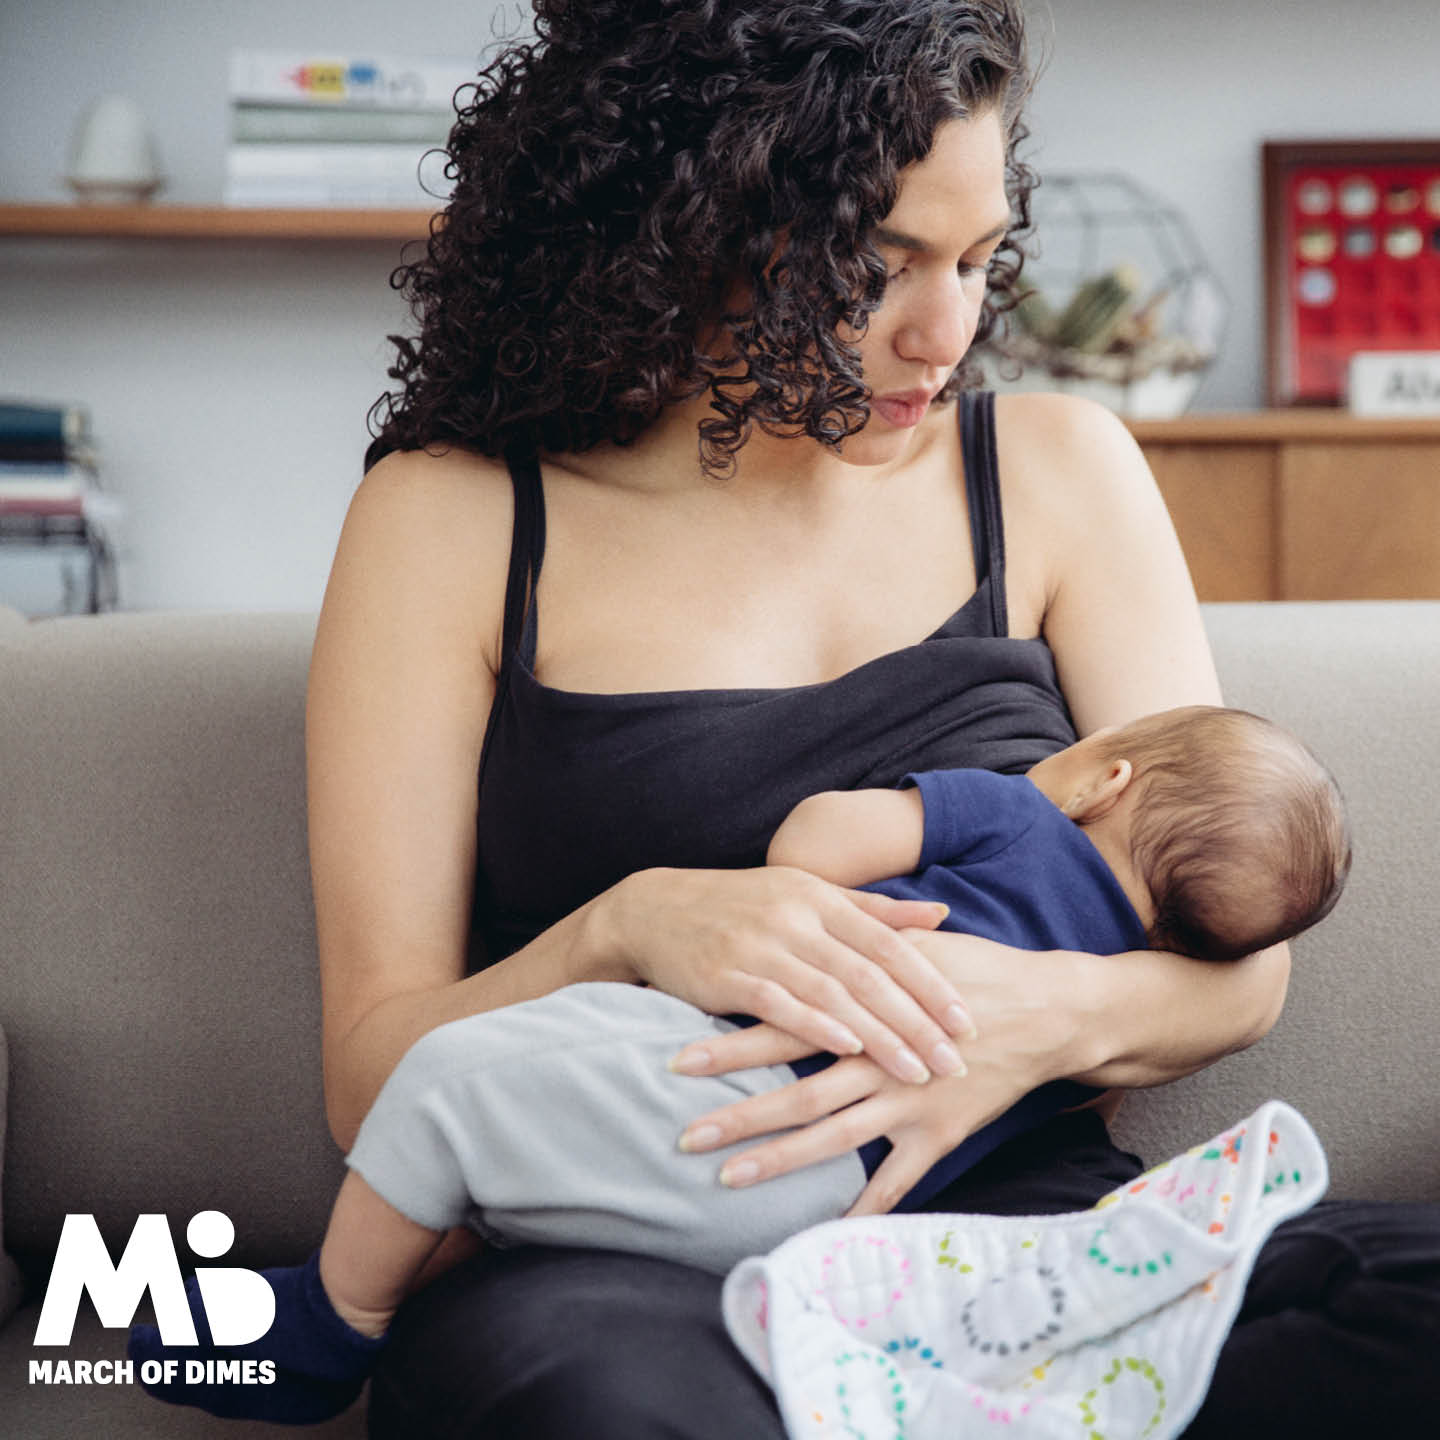 Breastfeeding: Common discomforts and what to do about them